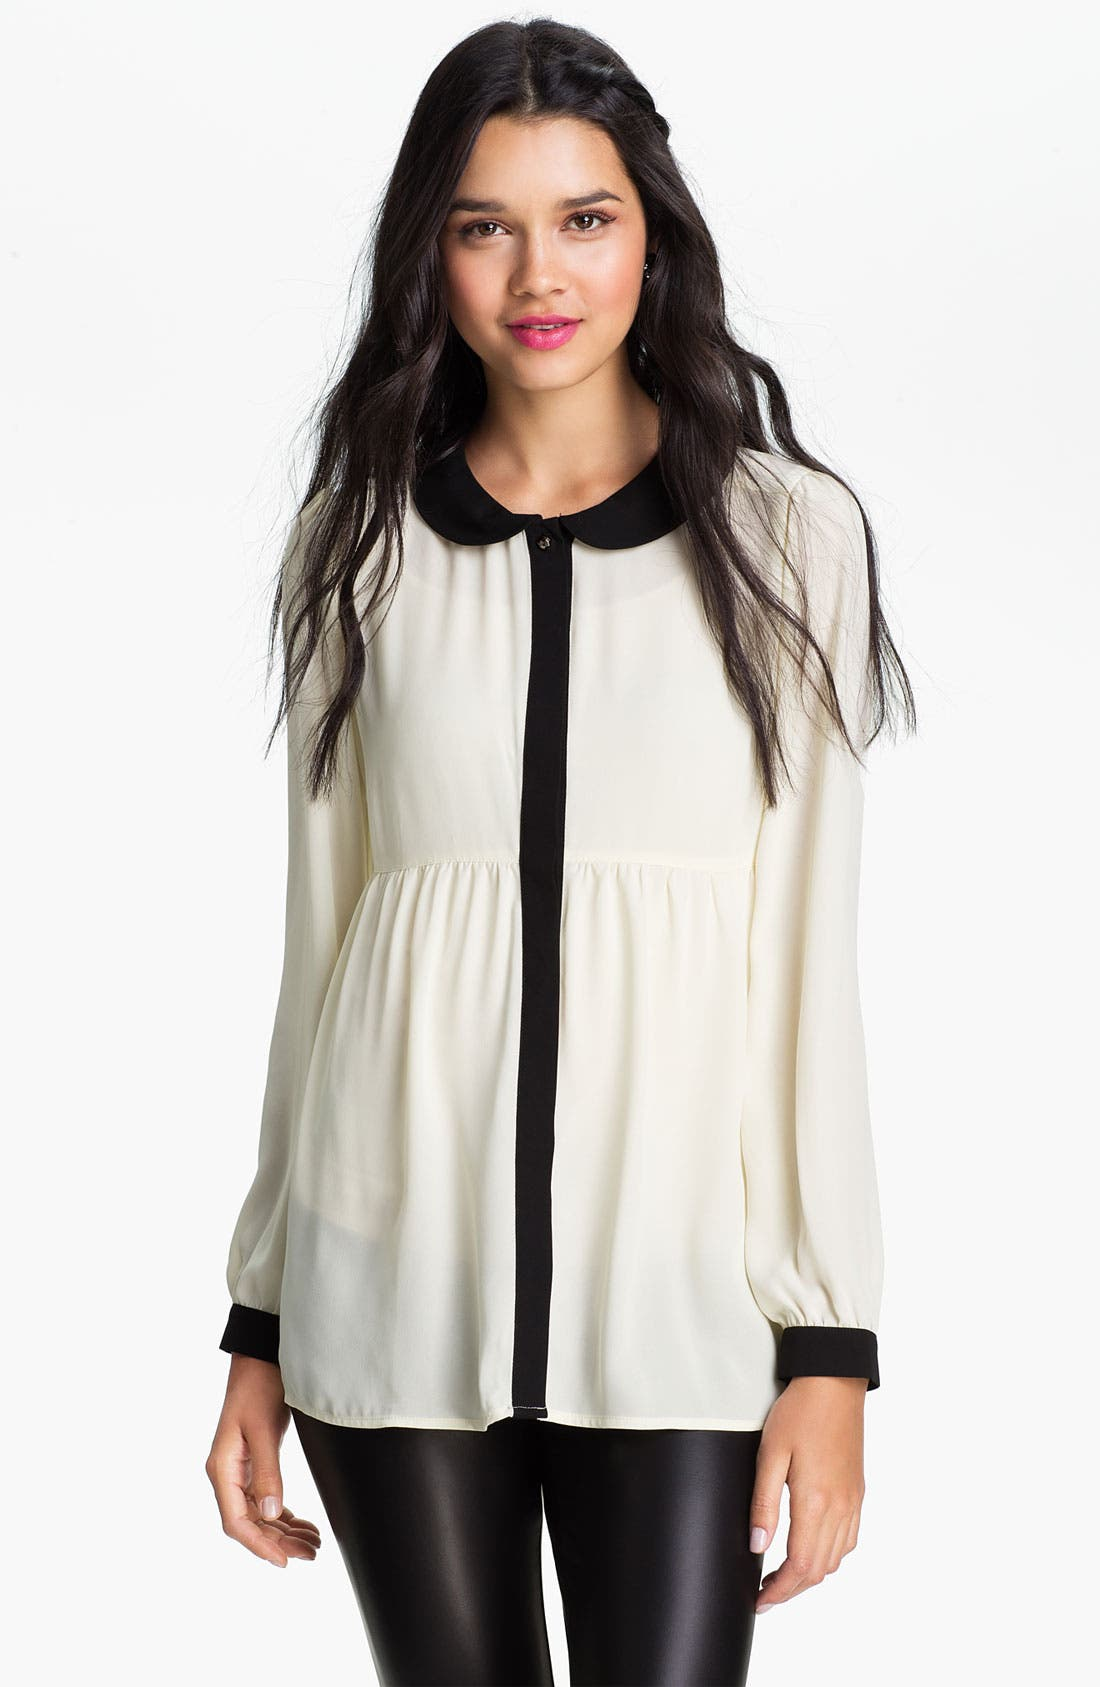 Chloe K Contrast Trim Babydoll Tunic,                             Main thumbnail 1, color,                             900